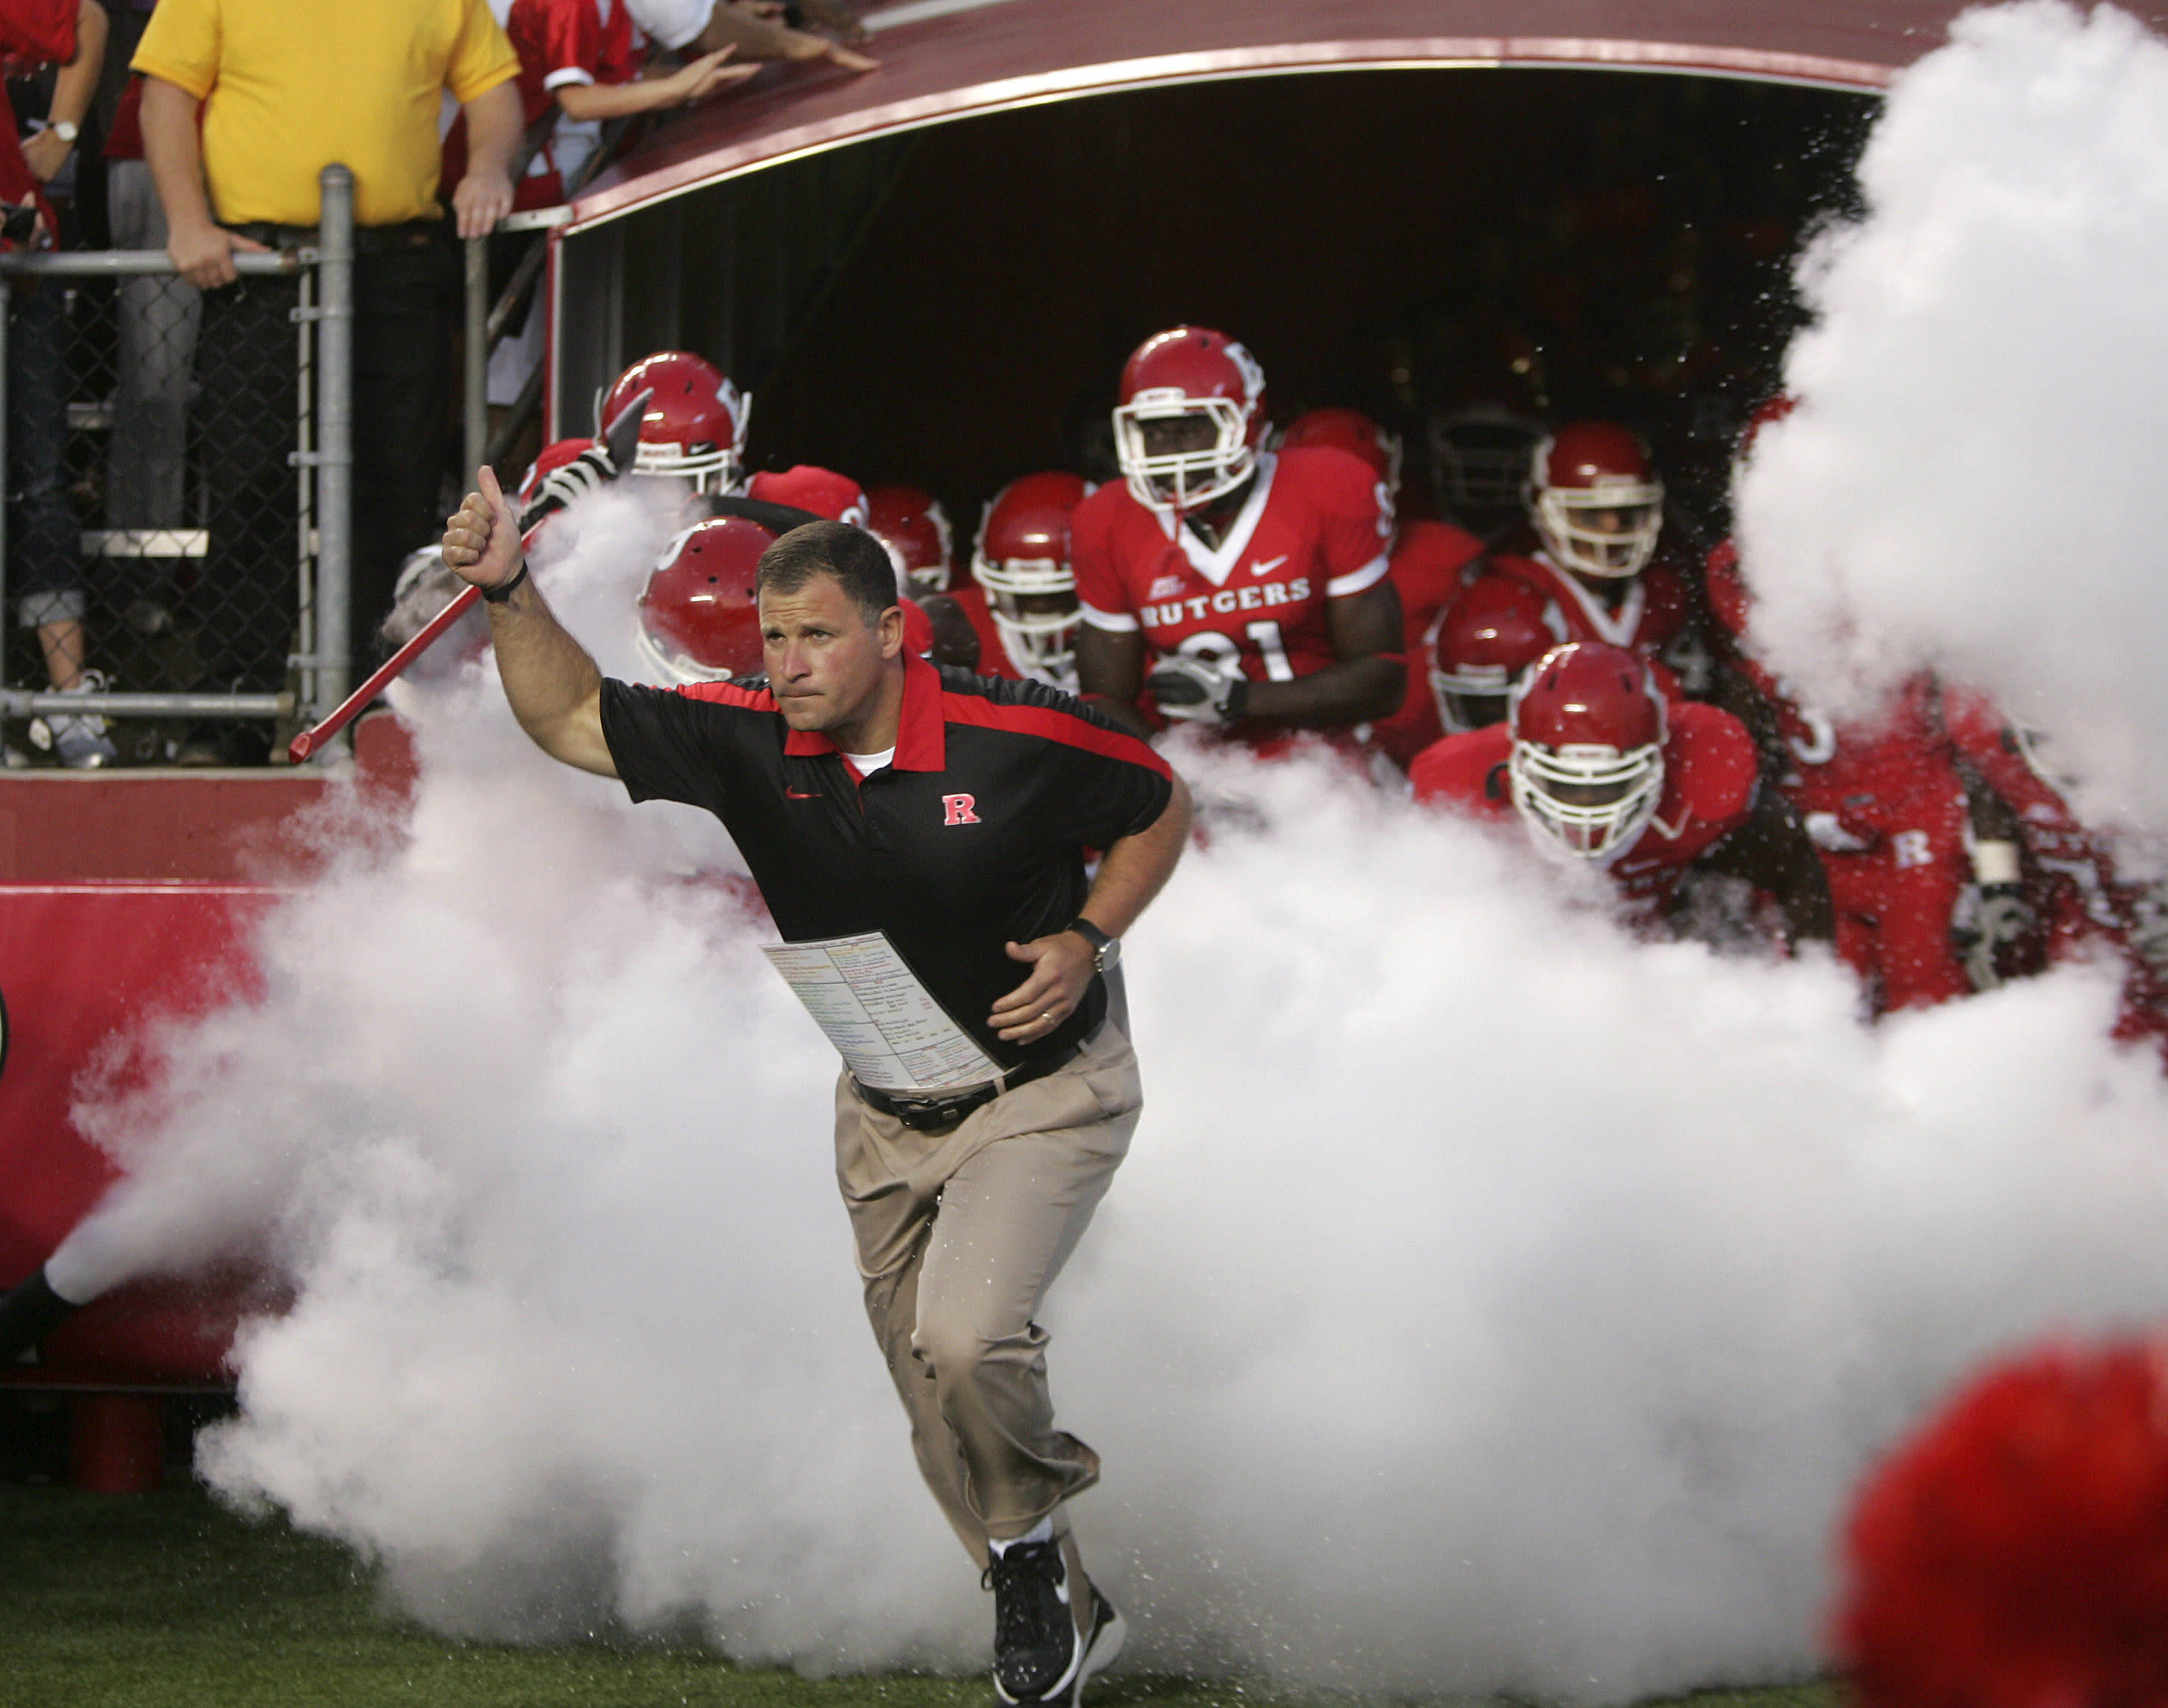 "Greg Schiano leads <a class=""link rapid-noclick-resp"" href=""/ncaaw/teams/rutgers/"" data-ylk=""slk:Rutgers Scarlet Knights"">Rutgers Scarlet Knights</a> onto the field before their college football game against <a class=""link rapid-noclick-resp"" href=""/ncaaf/teams/nc-central/"" data-ylk=""slk:North Carolina Central Eagles"">North Carolina Central Eagles</a> on Sept. 1, 2011. (Rich Schultz/Getty Images)"